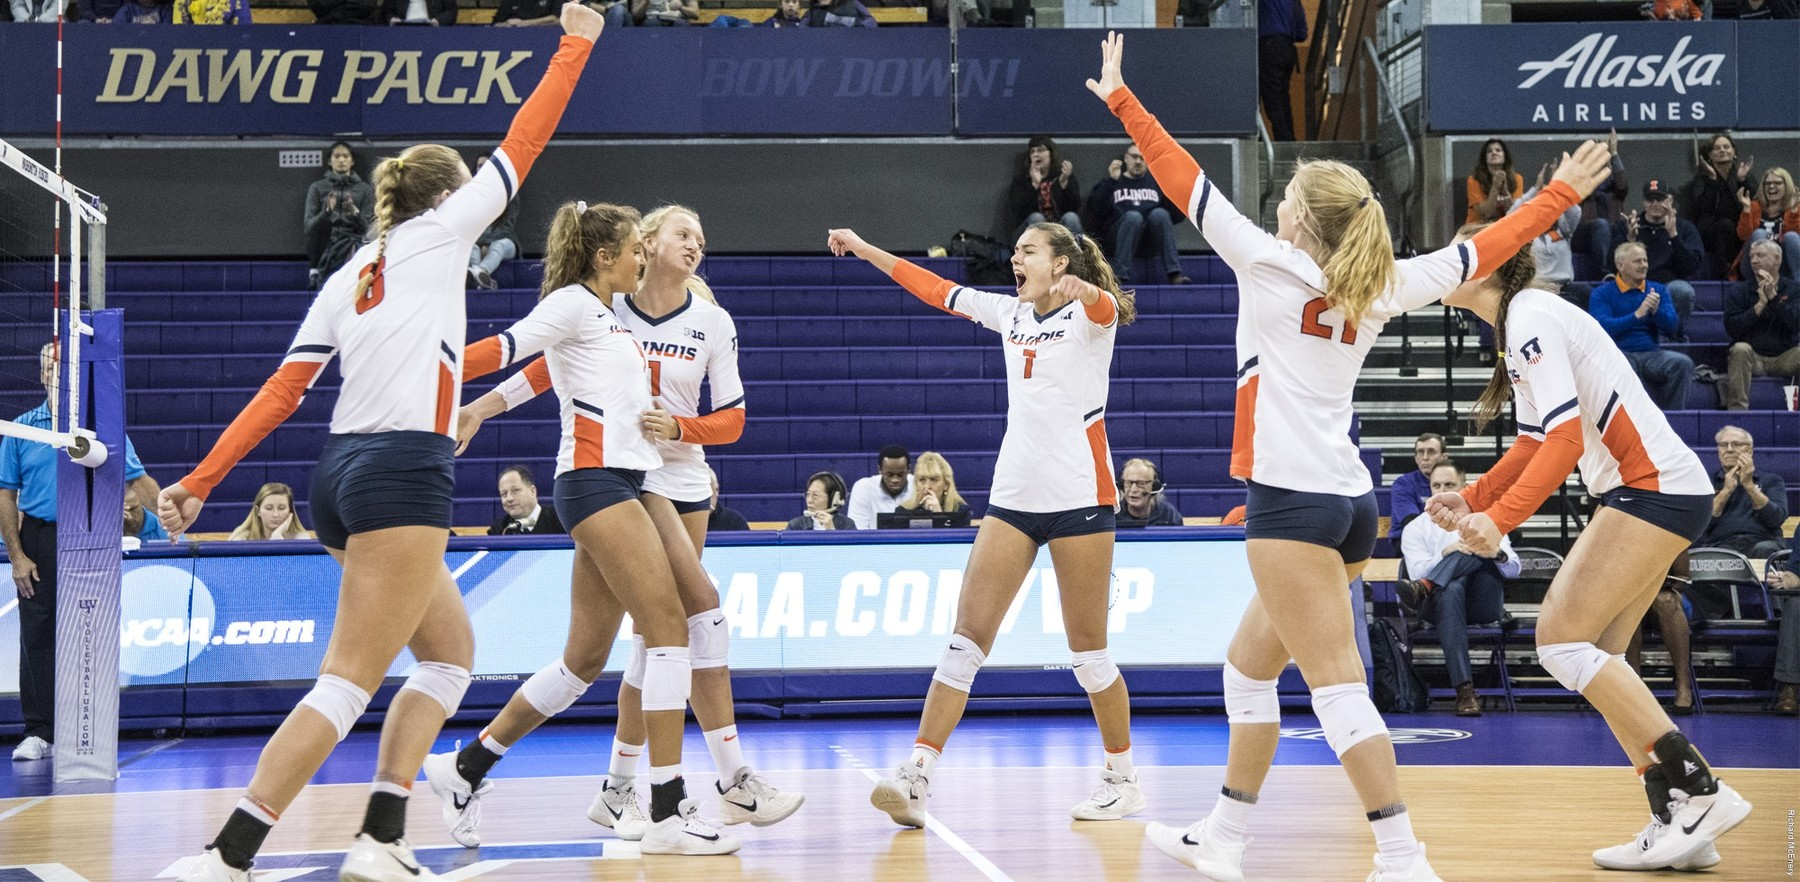 Illini volleyball team on-court celebration